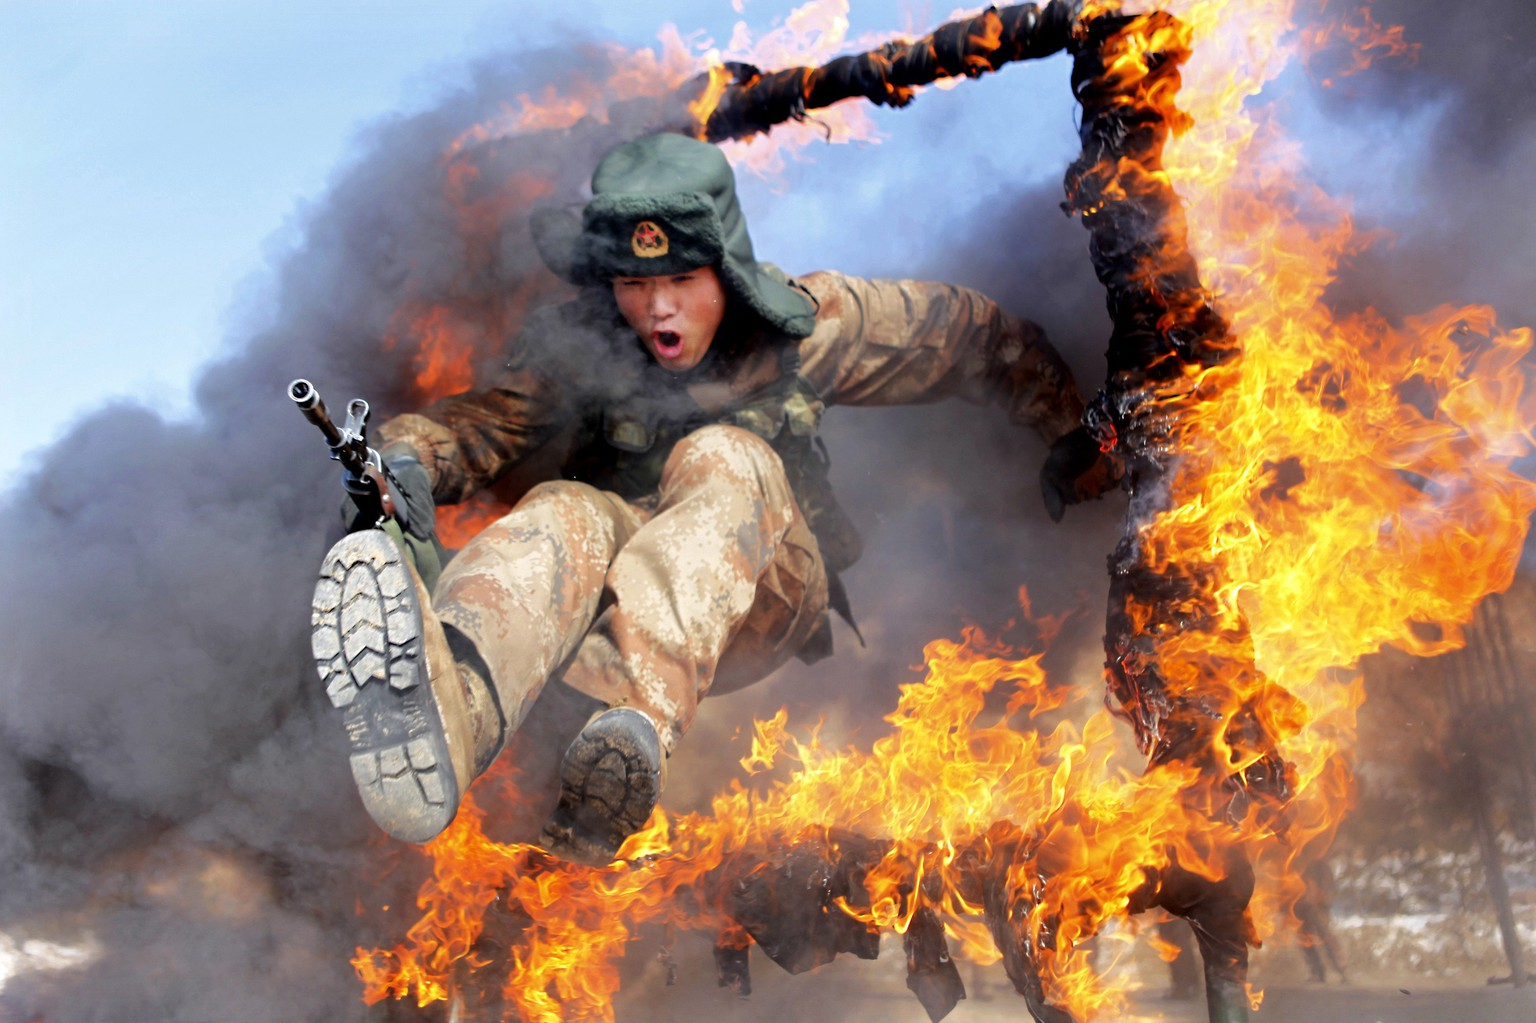 A frontier soldier from the People's Liberation Army jumps through a ring of fire as part of training in Heihe, Heilongjiang province, March 5, 2014. REUTERS/China Daily (CHINA - Tags: MILITARY TPX IMAGES OF THE DAY) CHINA OUT. NO COMMERCIAL OR EDITORIAL SALES IN CHINA